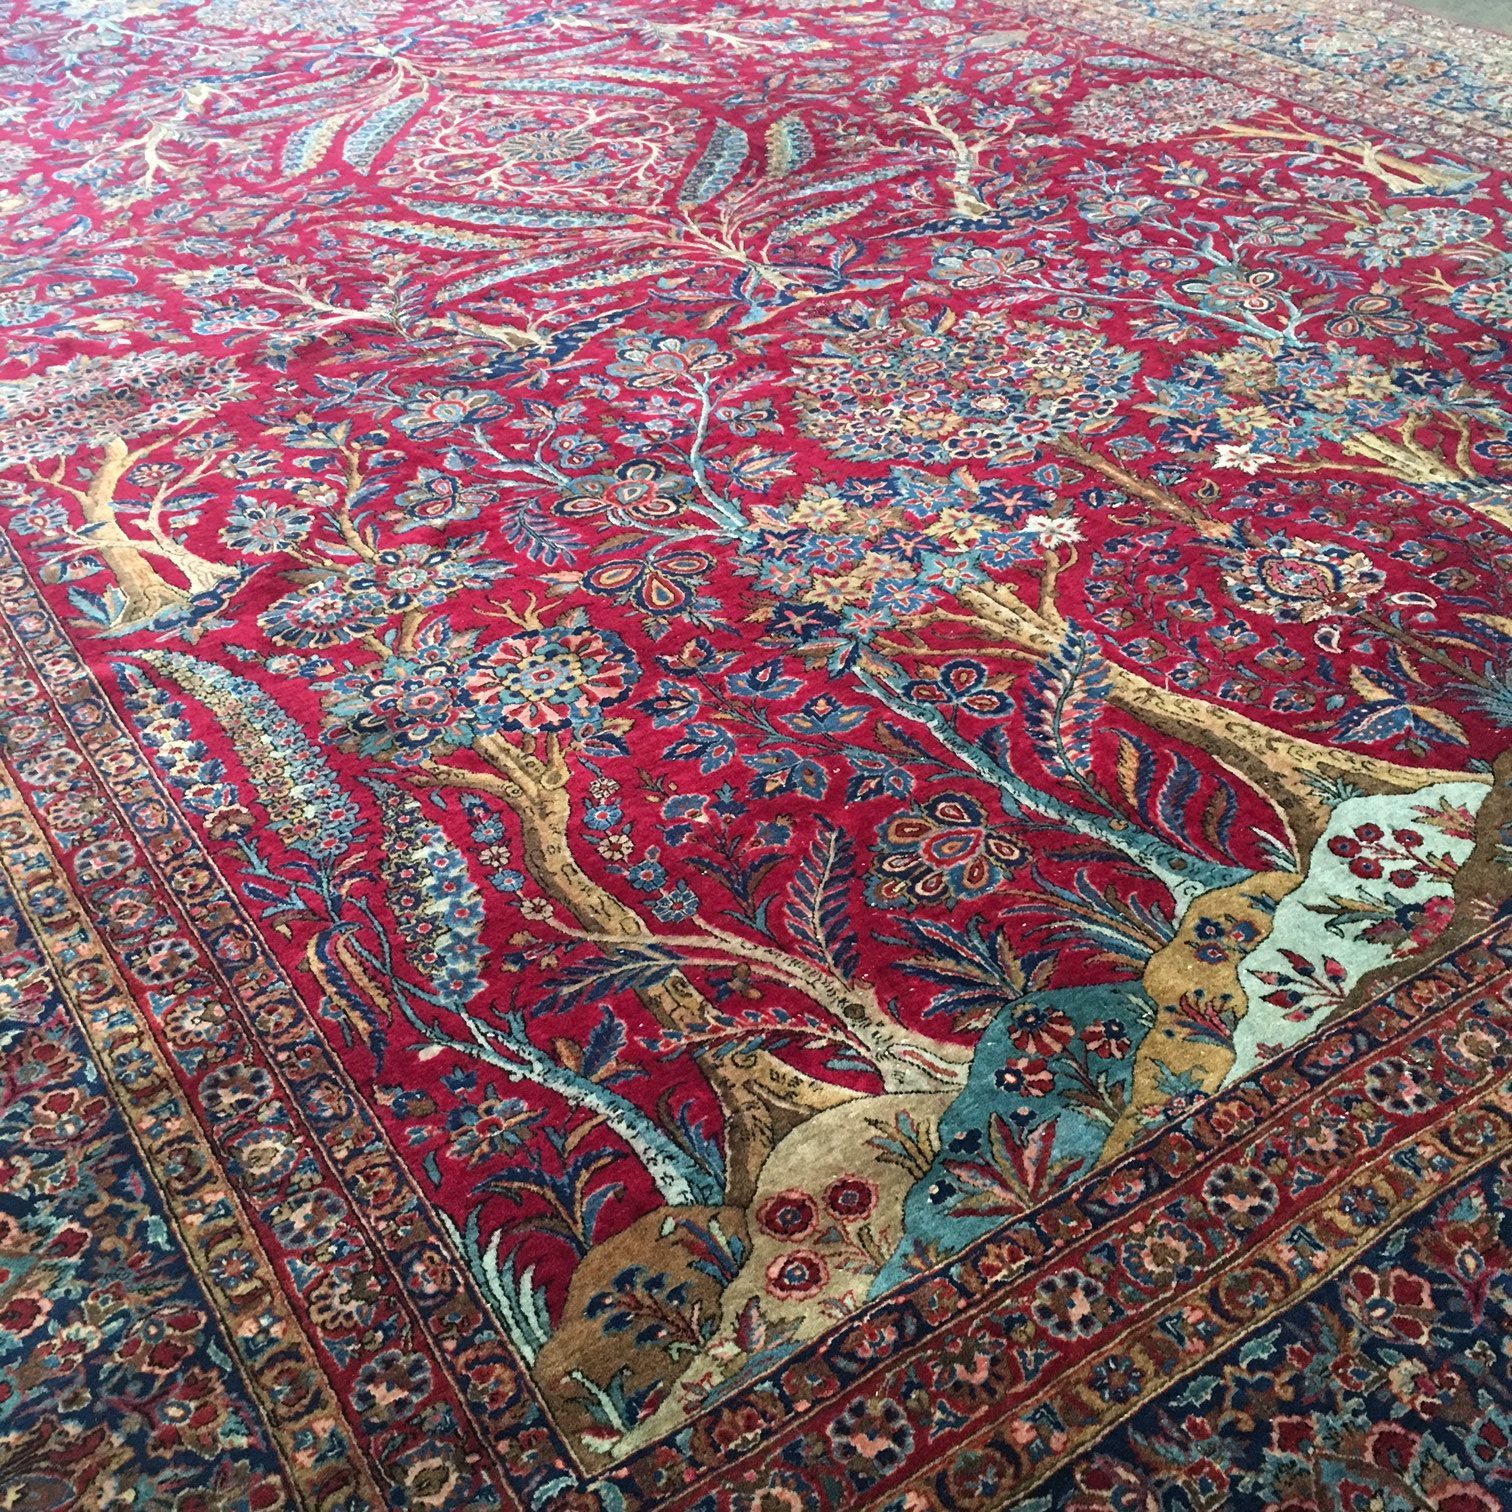 Green Rug Clean Dallas: Rug Care Services: Rug Cleaning And Restoration